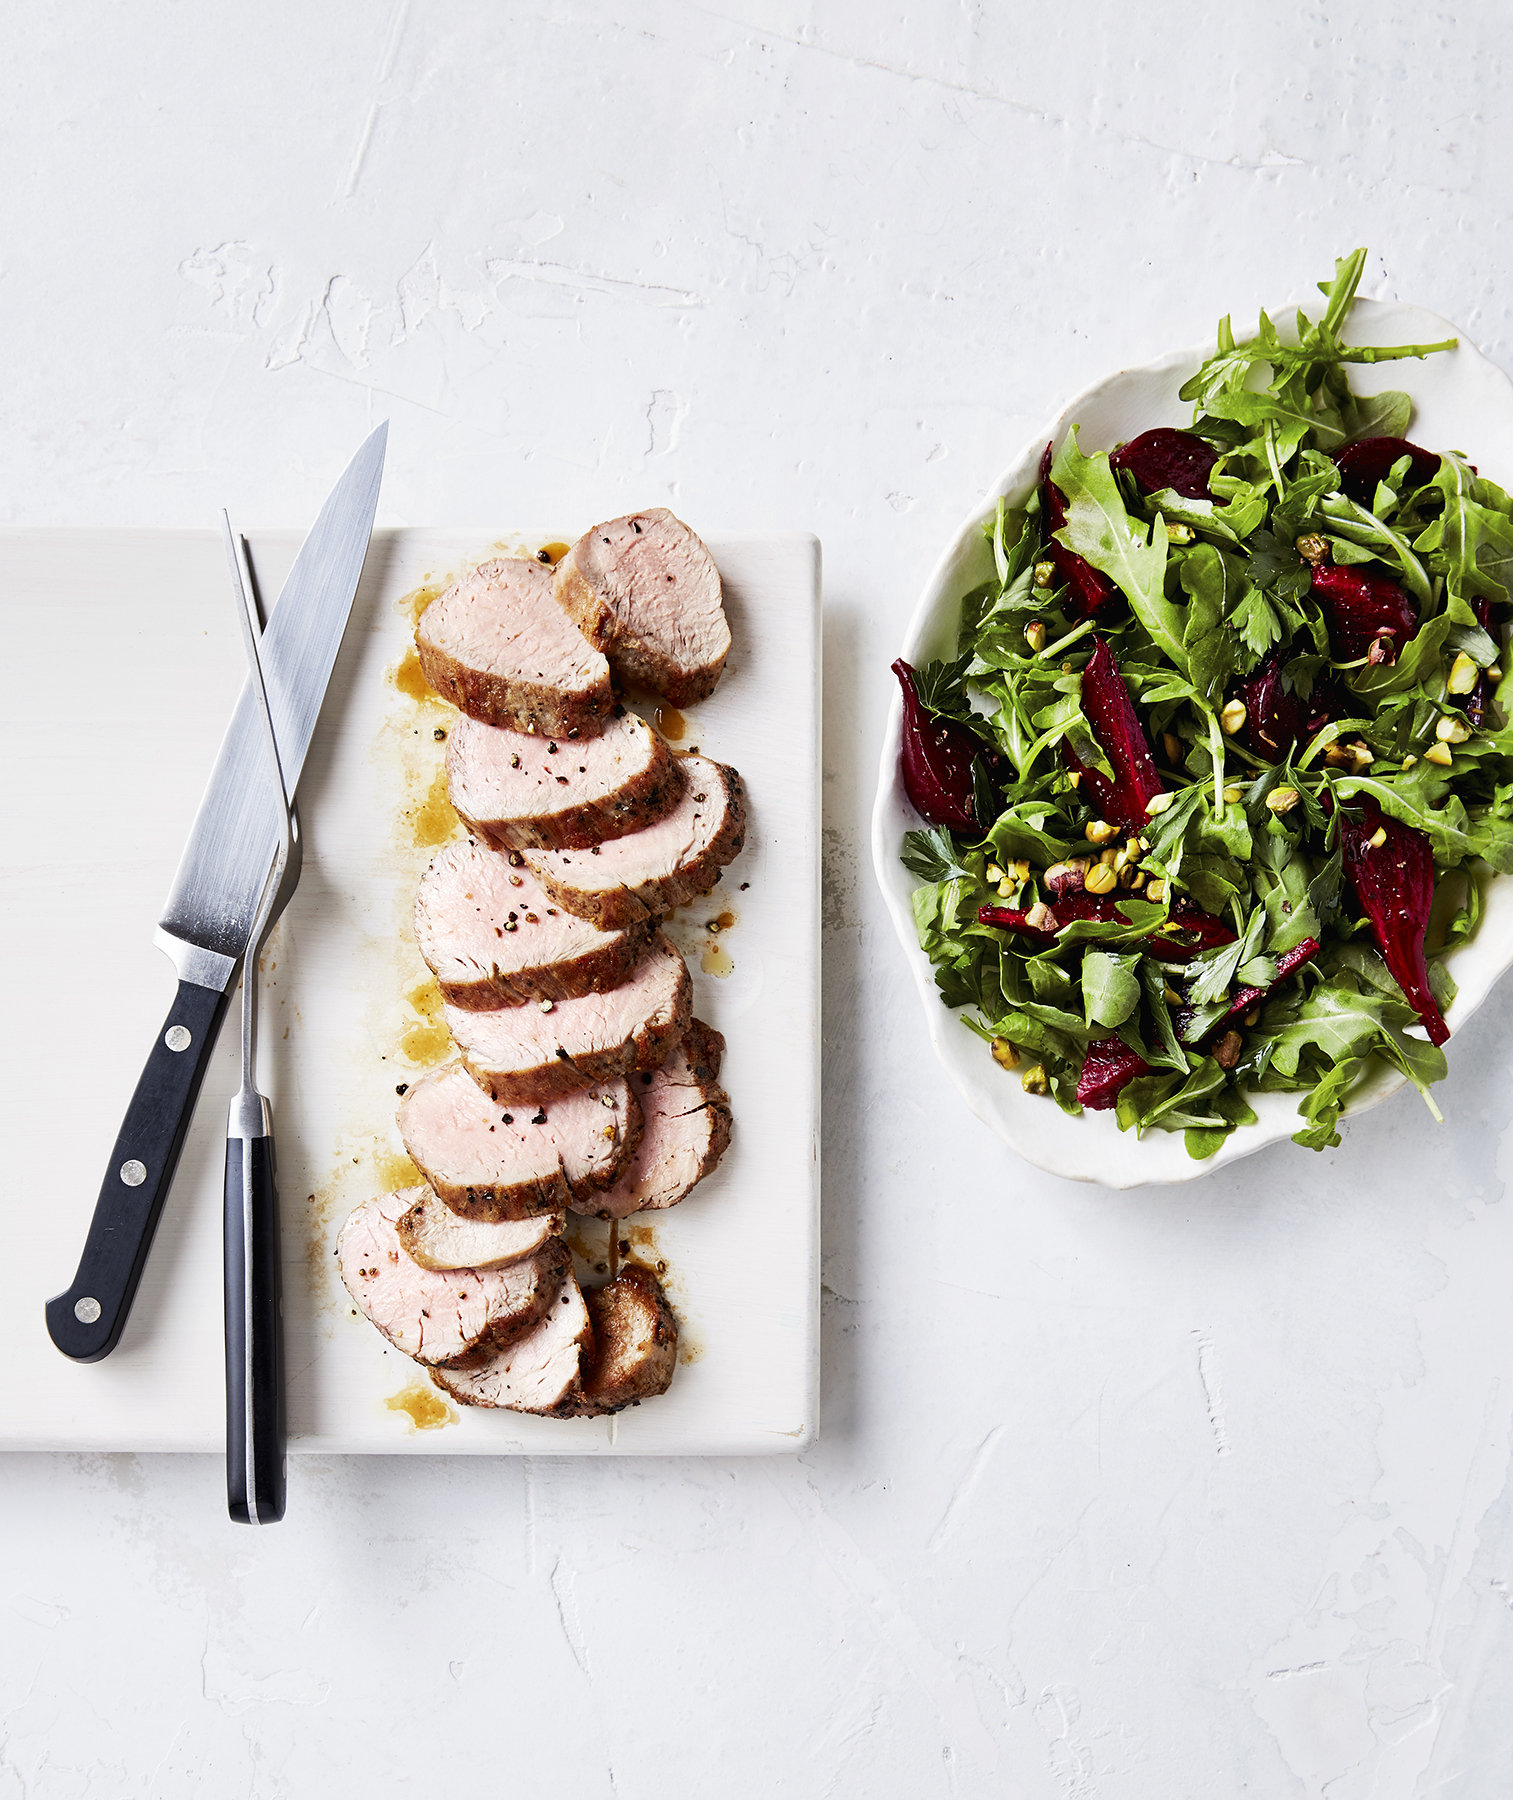 Pork Tenderloin With Beet and Pistachio Salad